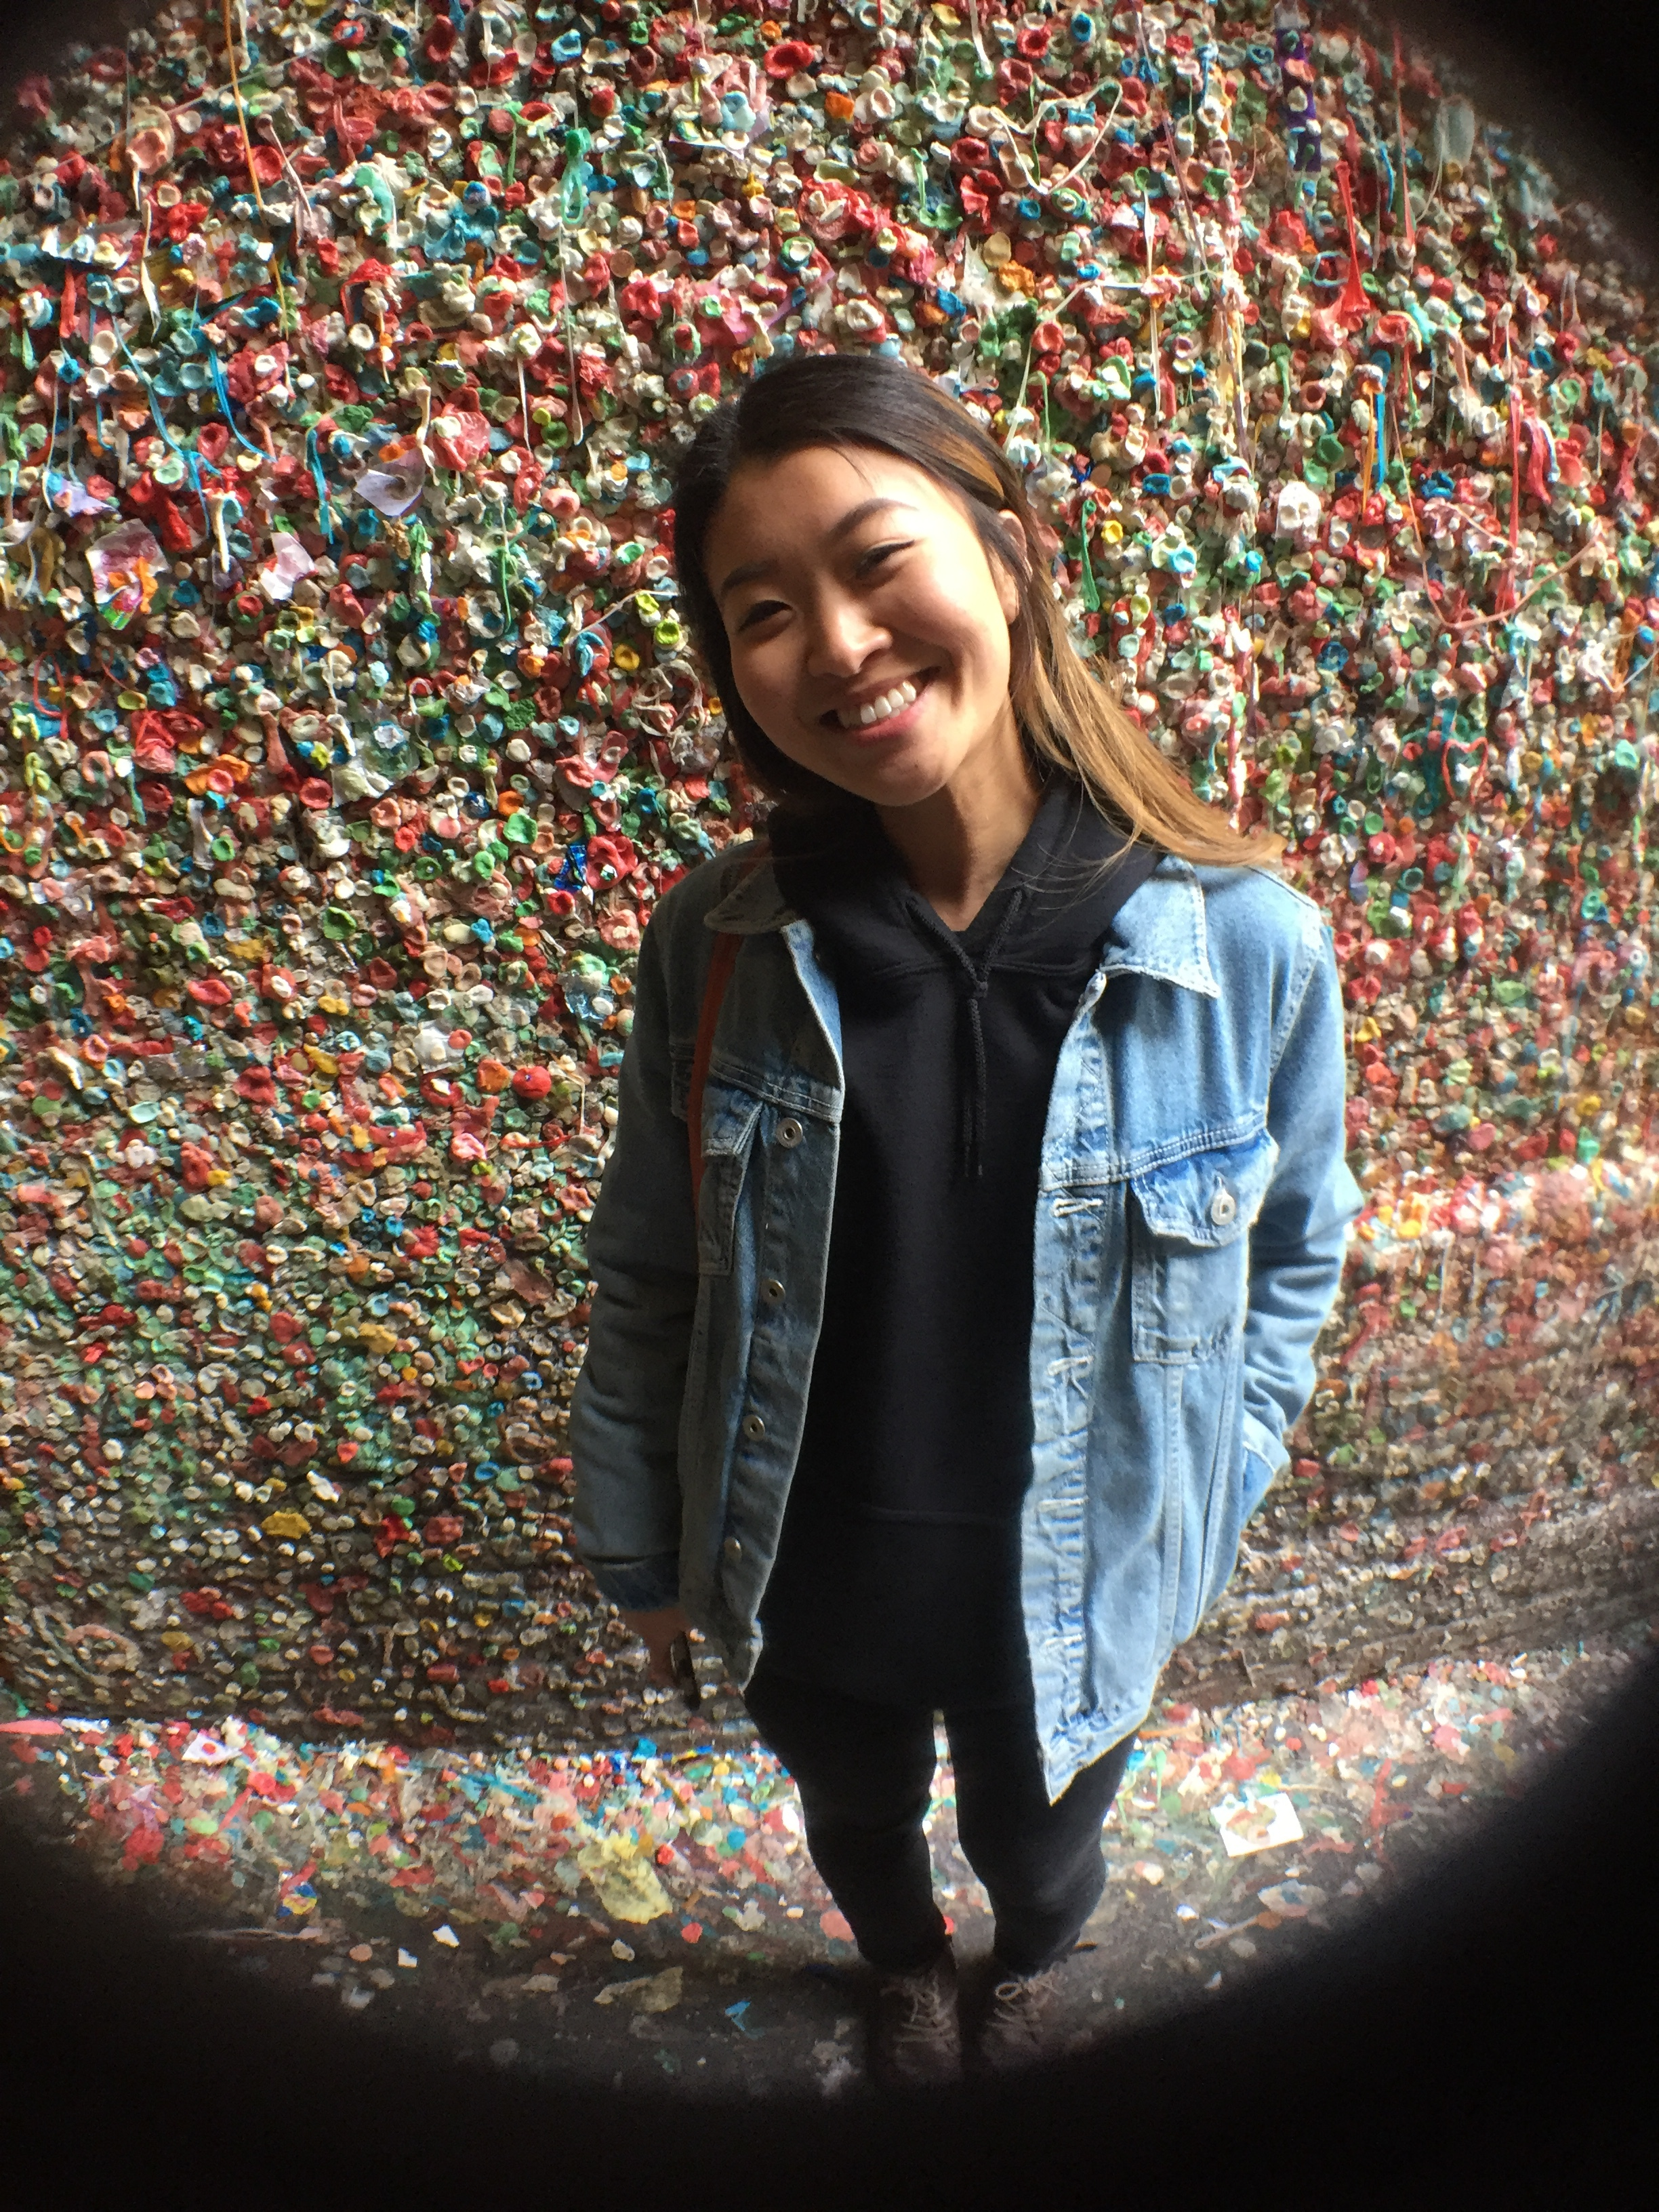 """""""Gum Wall"""" - I call this one, I am smiling on the outside but freaking out on the inside being this close to all this gum."""